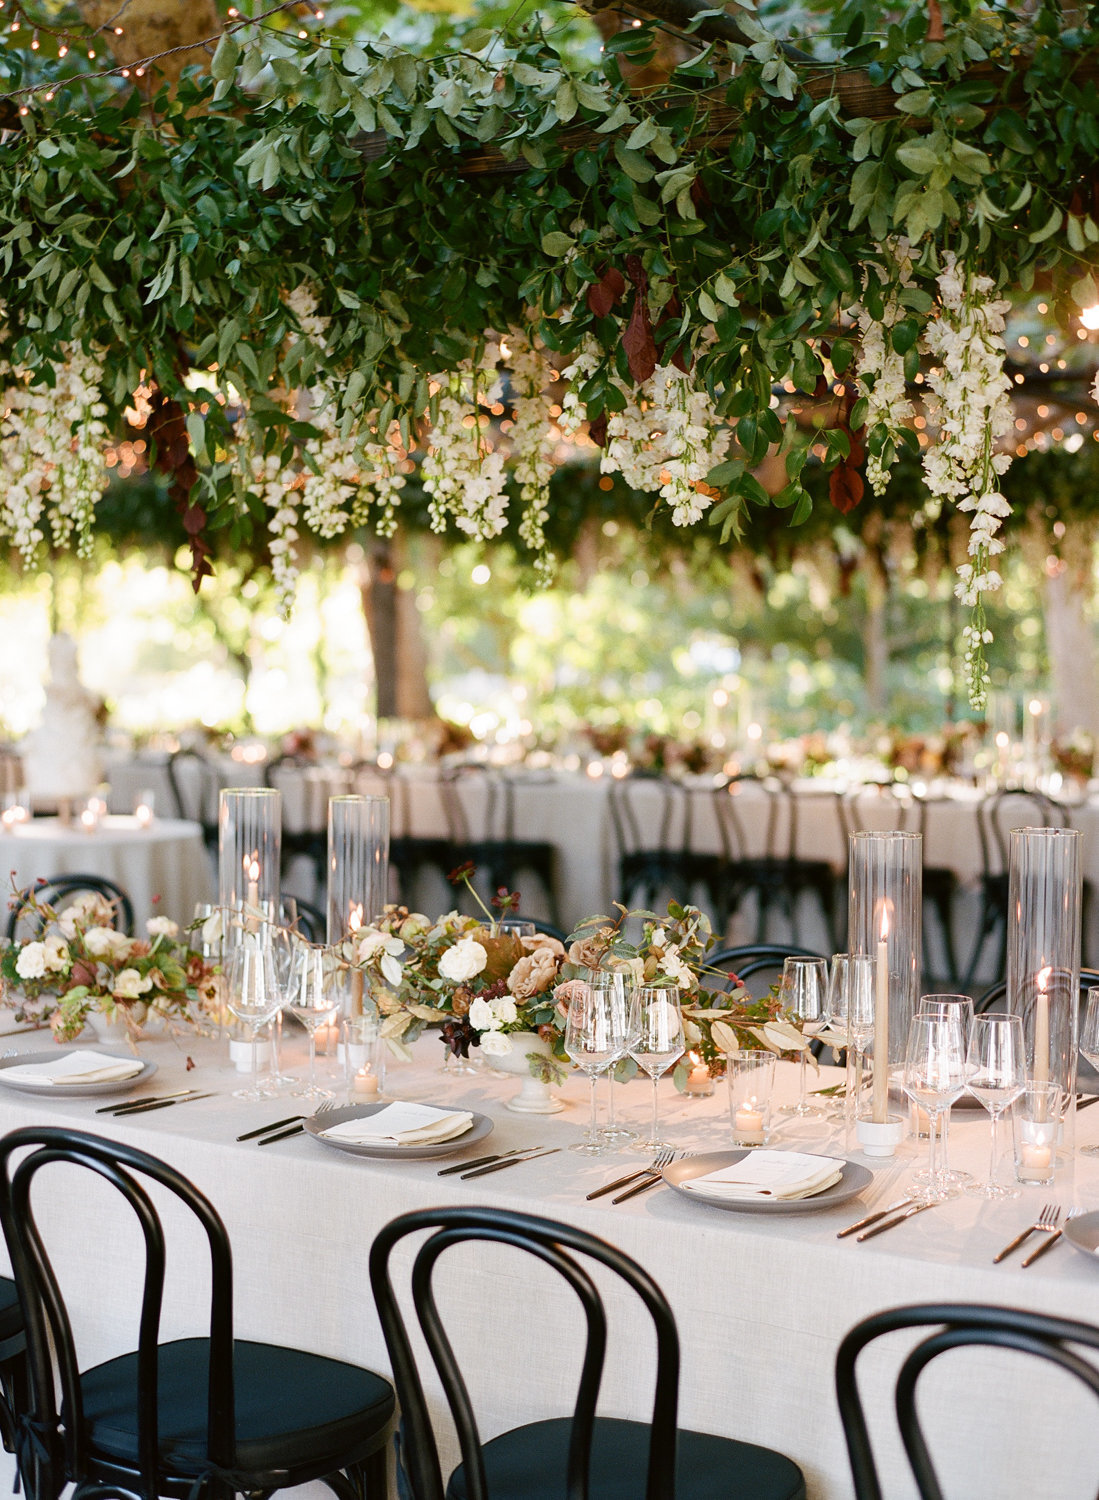 Reception for wedding by Jenny Schneider Events at the Beaulieu Garden in Napa Valley, California. Photo by Lori Paladino Photography.